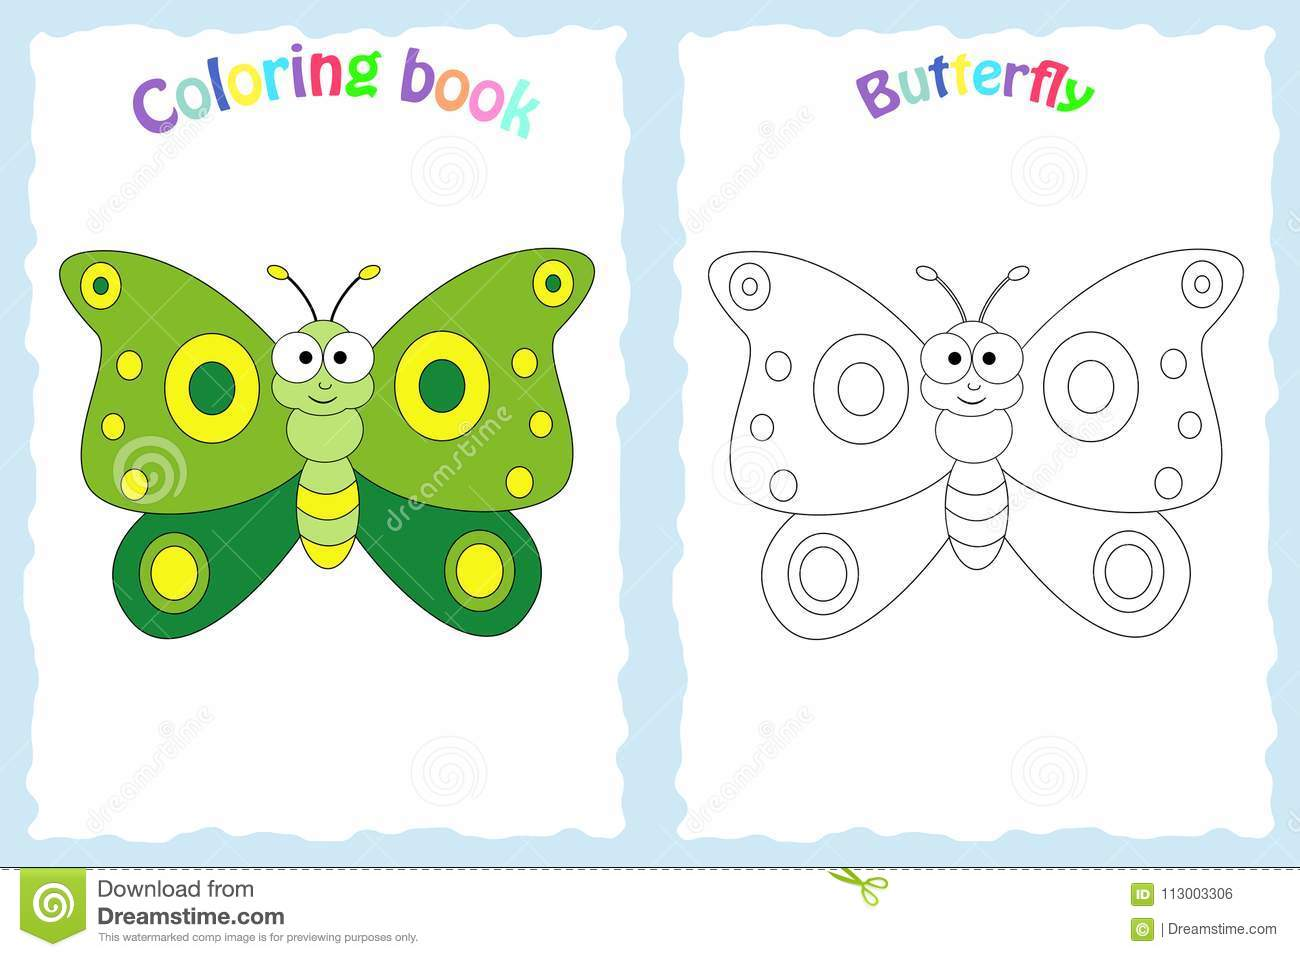 Coloring Book Page For Preschool Children With Colorful